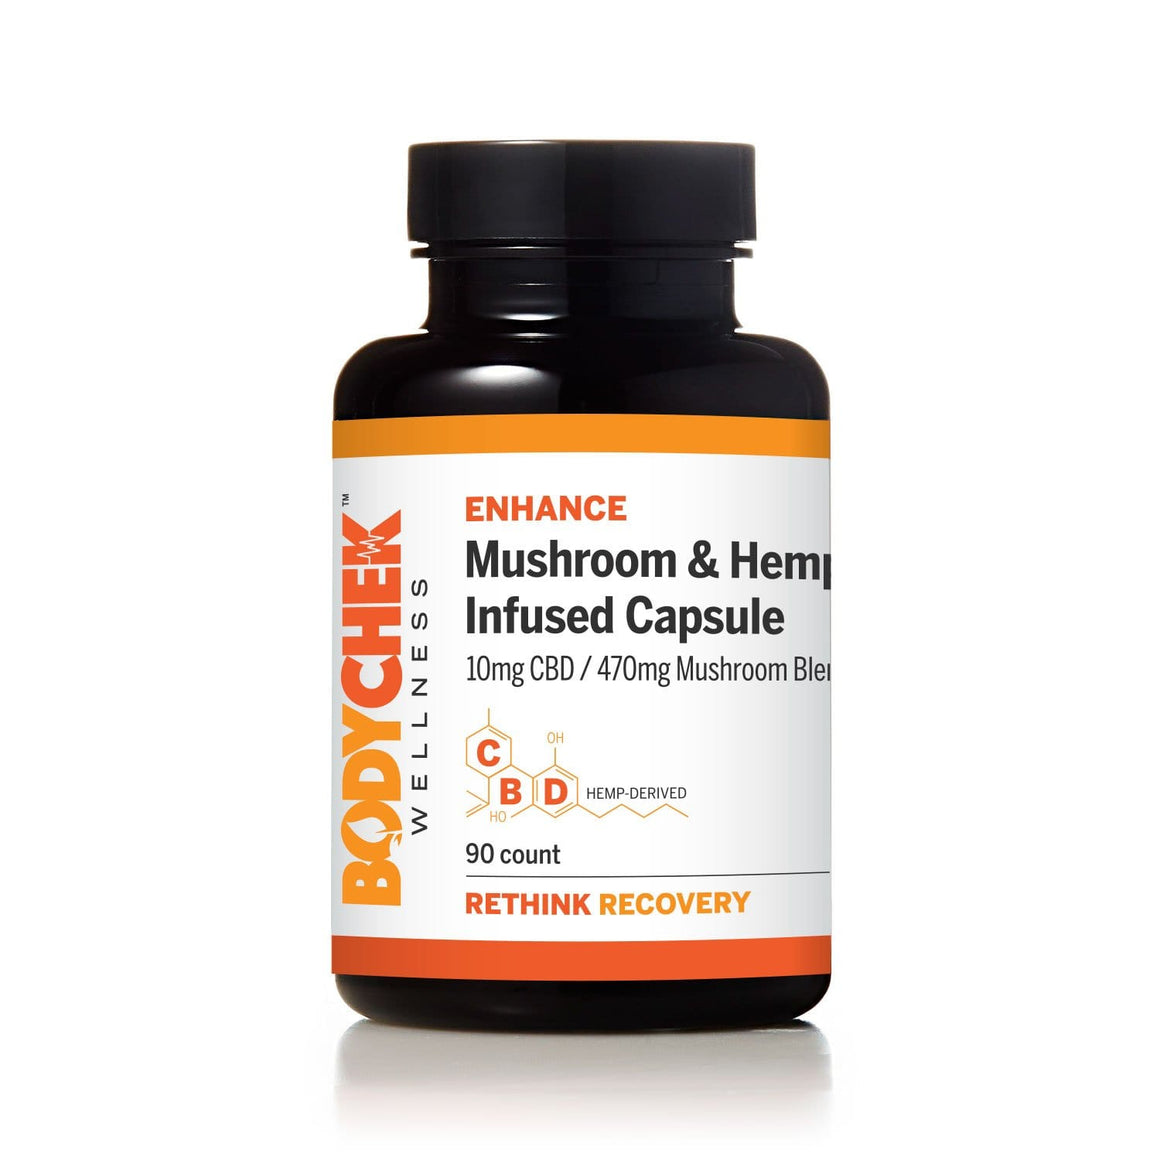 ENHANCE Mushroom Infused Blend Capsules